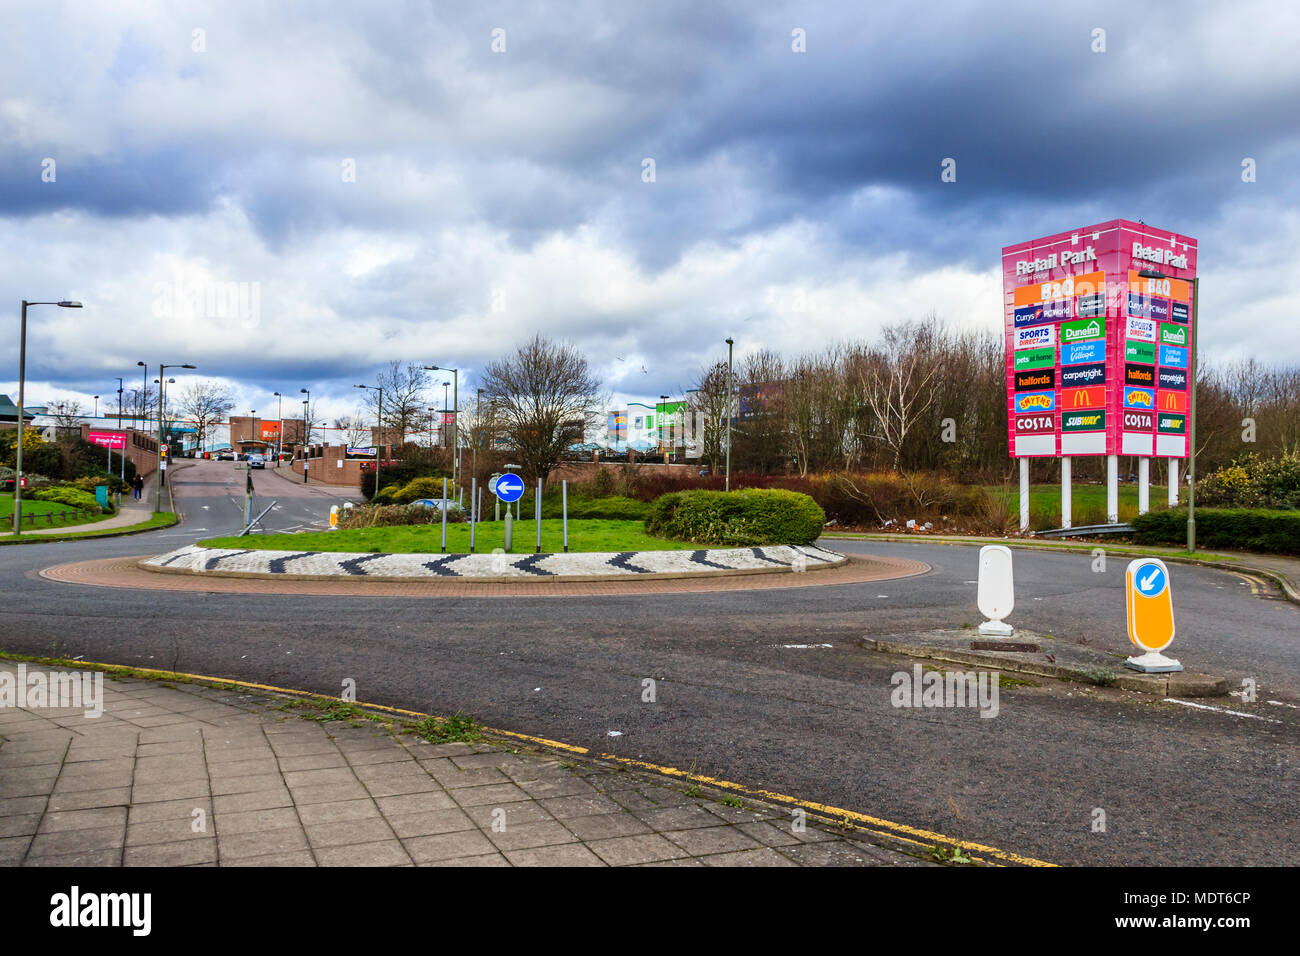 Friern Bridge retail park, next to the North Circular Road near Friern Barnet in North London, UK - Stock Image